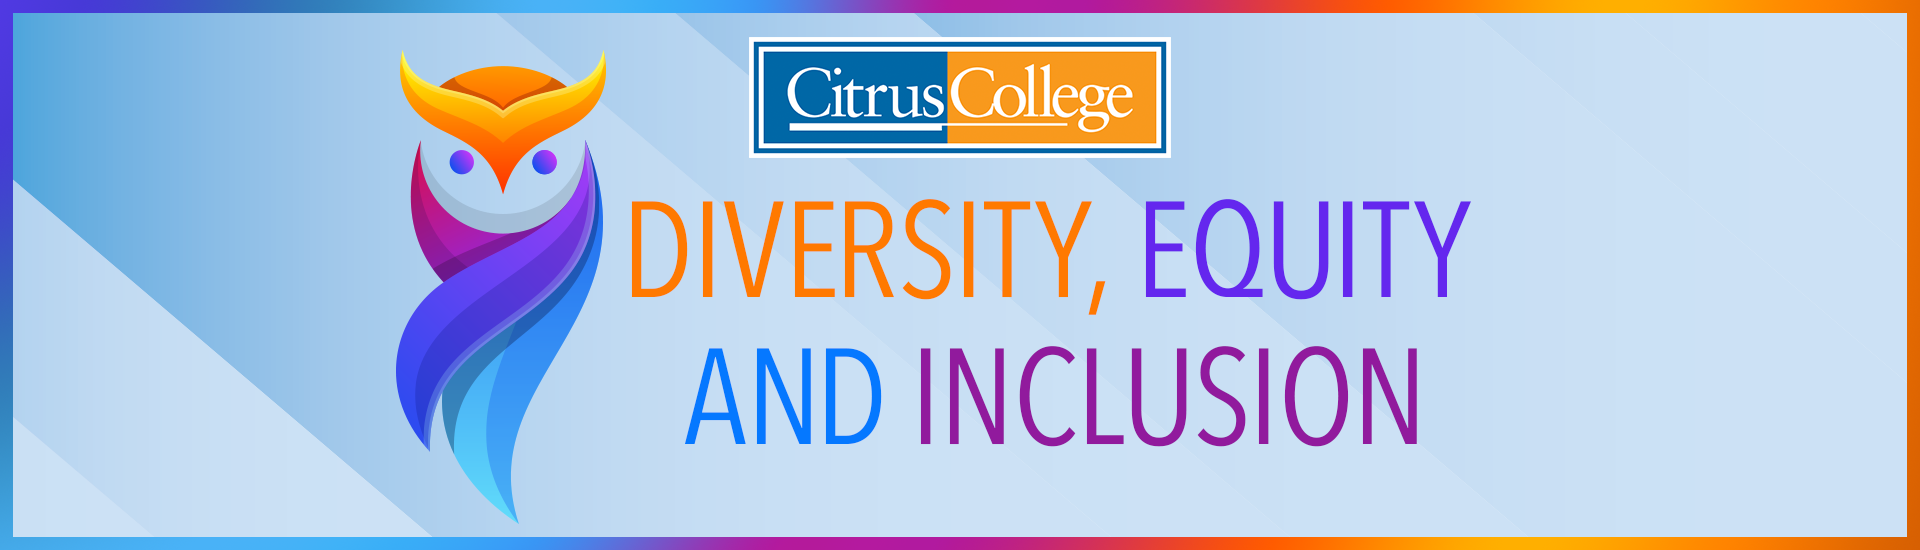 Citrus College Diversity, Equity and Inclusion banner